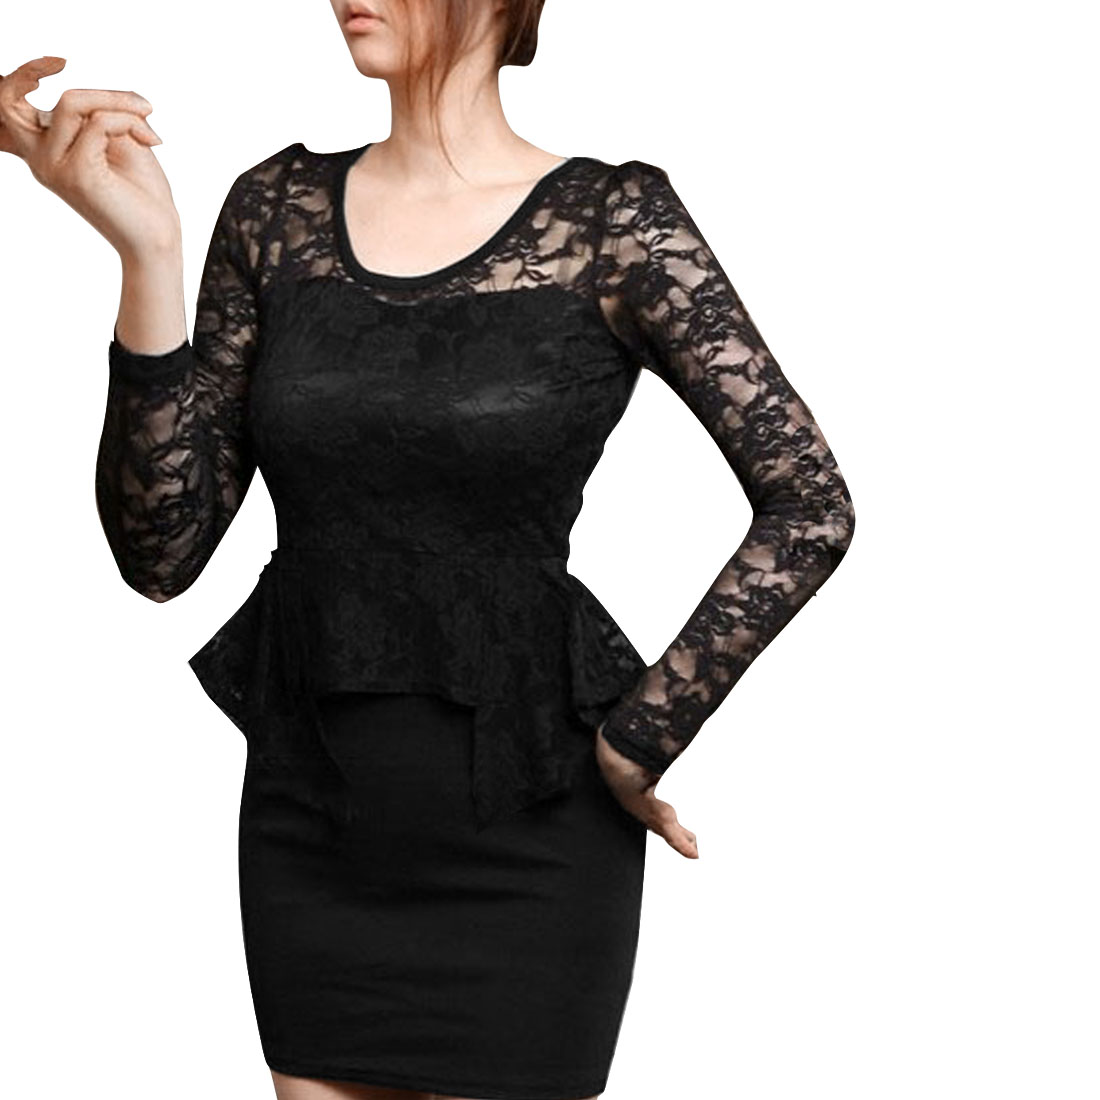 Lady Scoop Neck Long Sleeve Lace Panel Stretchy Black Dress XS